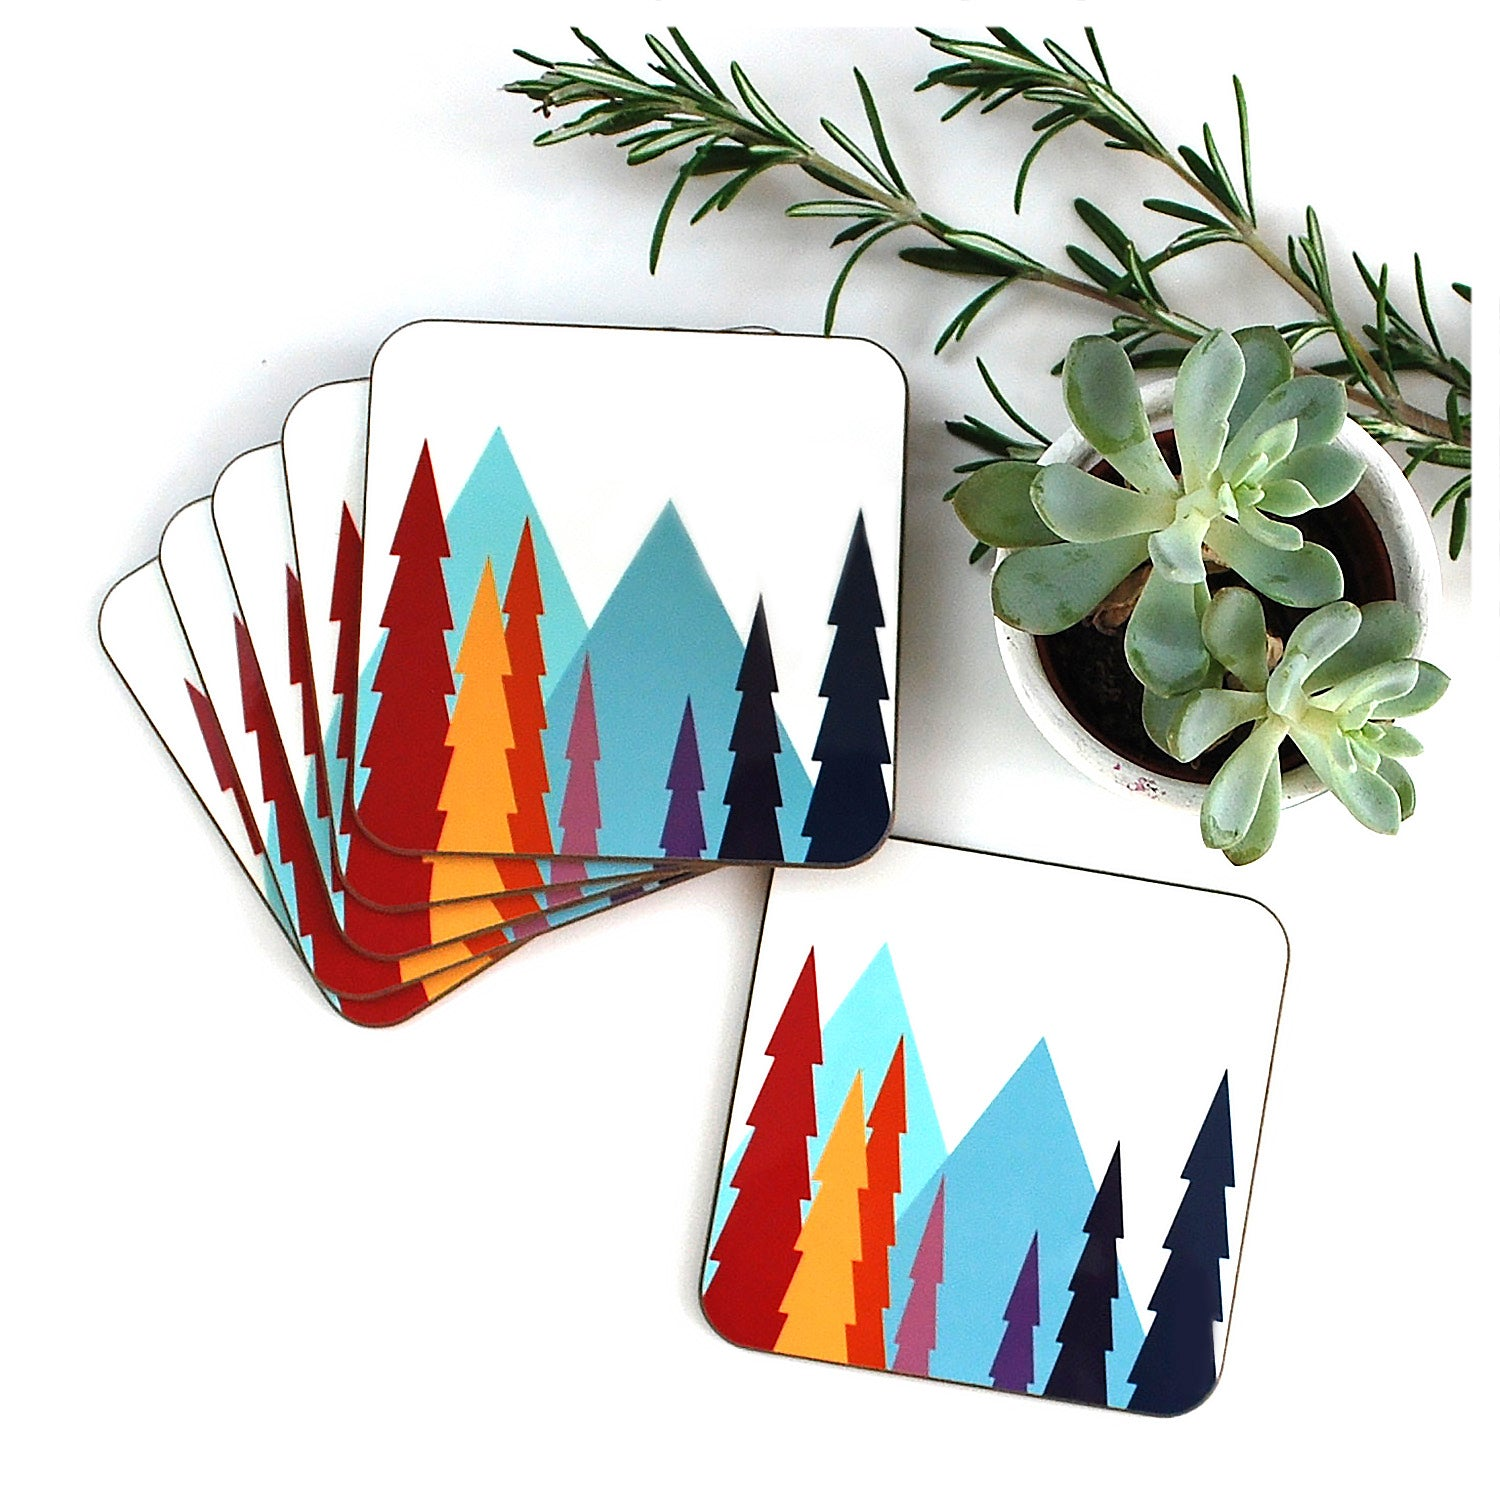 Nordic Trees Coasters, set of 6, in a stack with succulent | The inkabilly Emporium